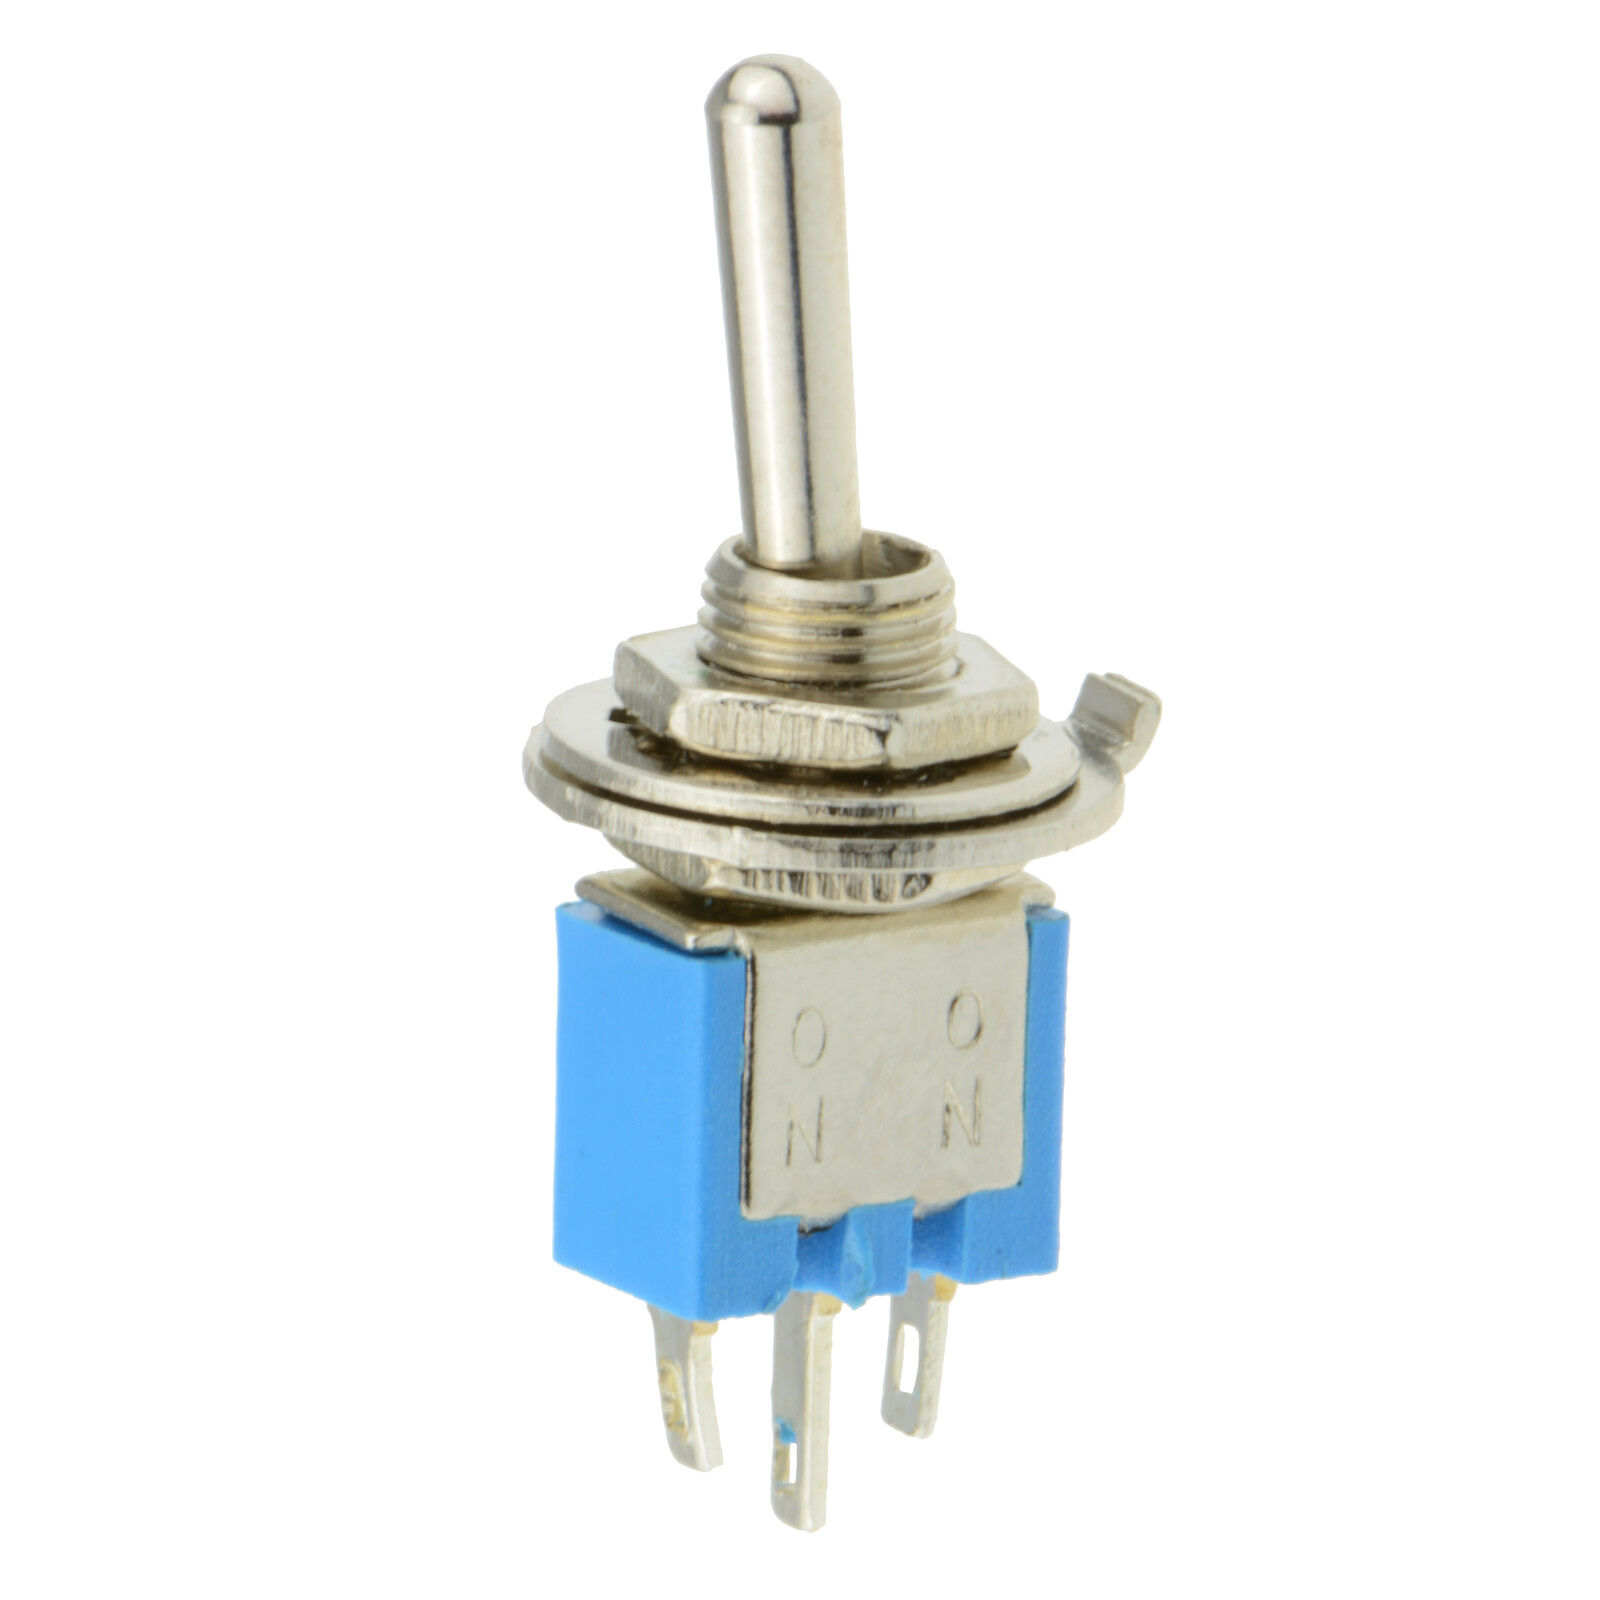 On//On SPDT PCB Mount Sub Miniature Toggle Switch for Robots Arduino UK Seller